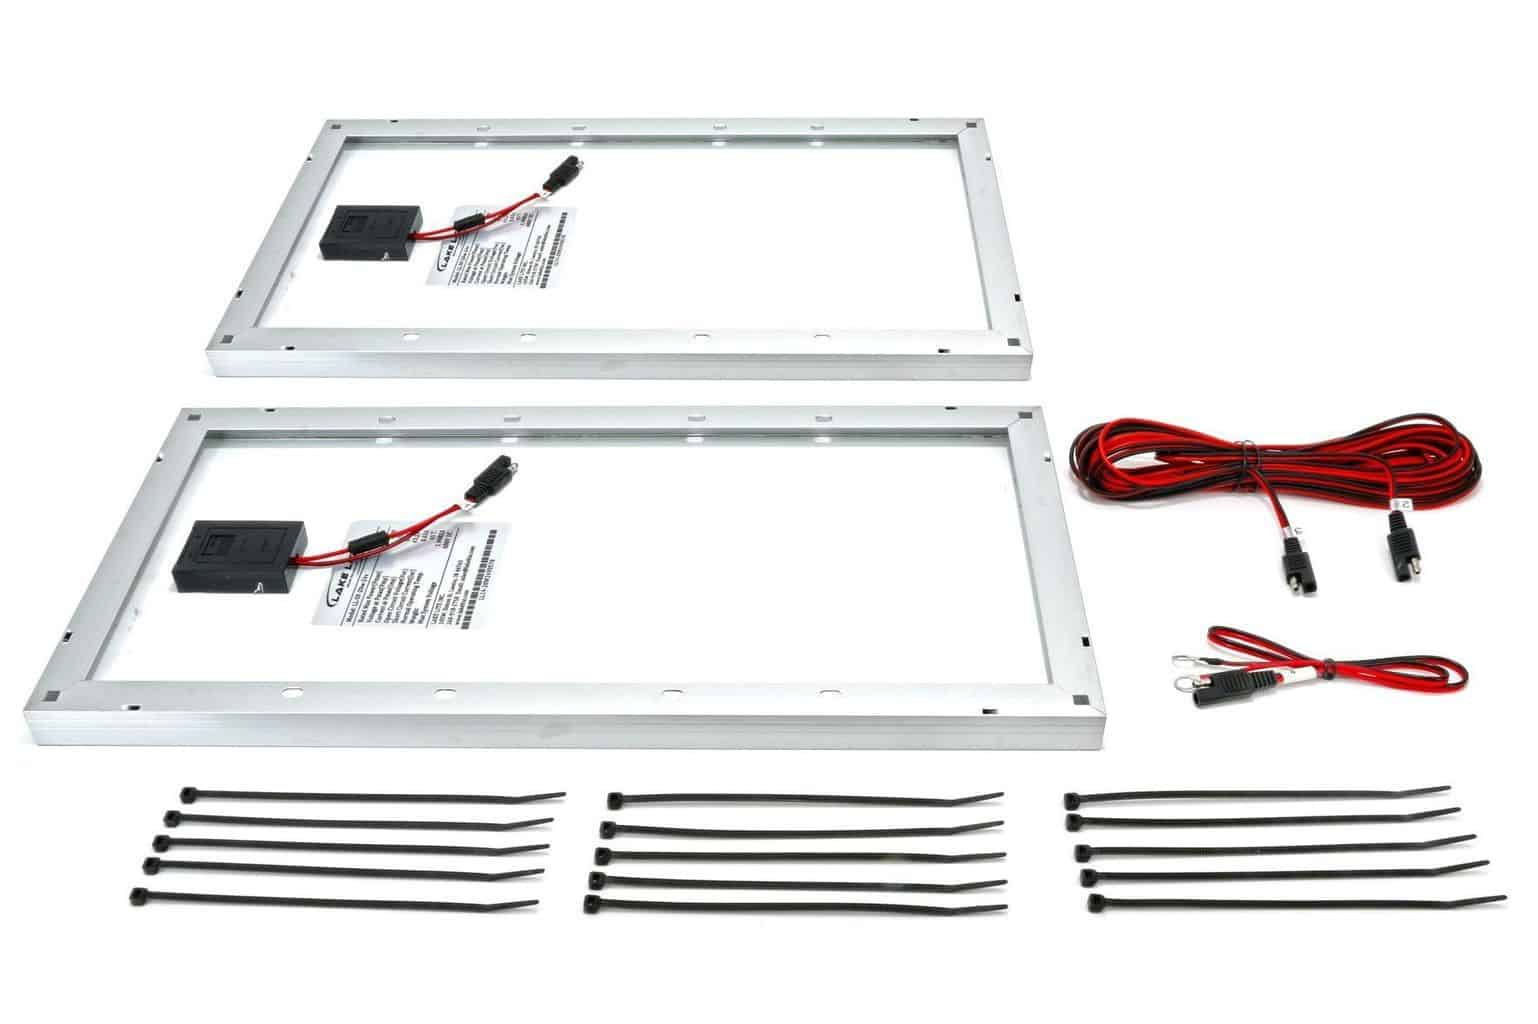 40 Watt 24 Volt Boat Lift Solar Charging Kit Midwest Marine Supplies